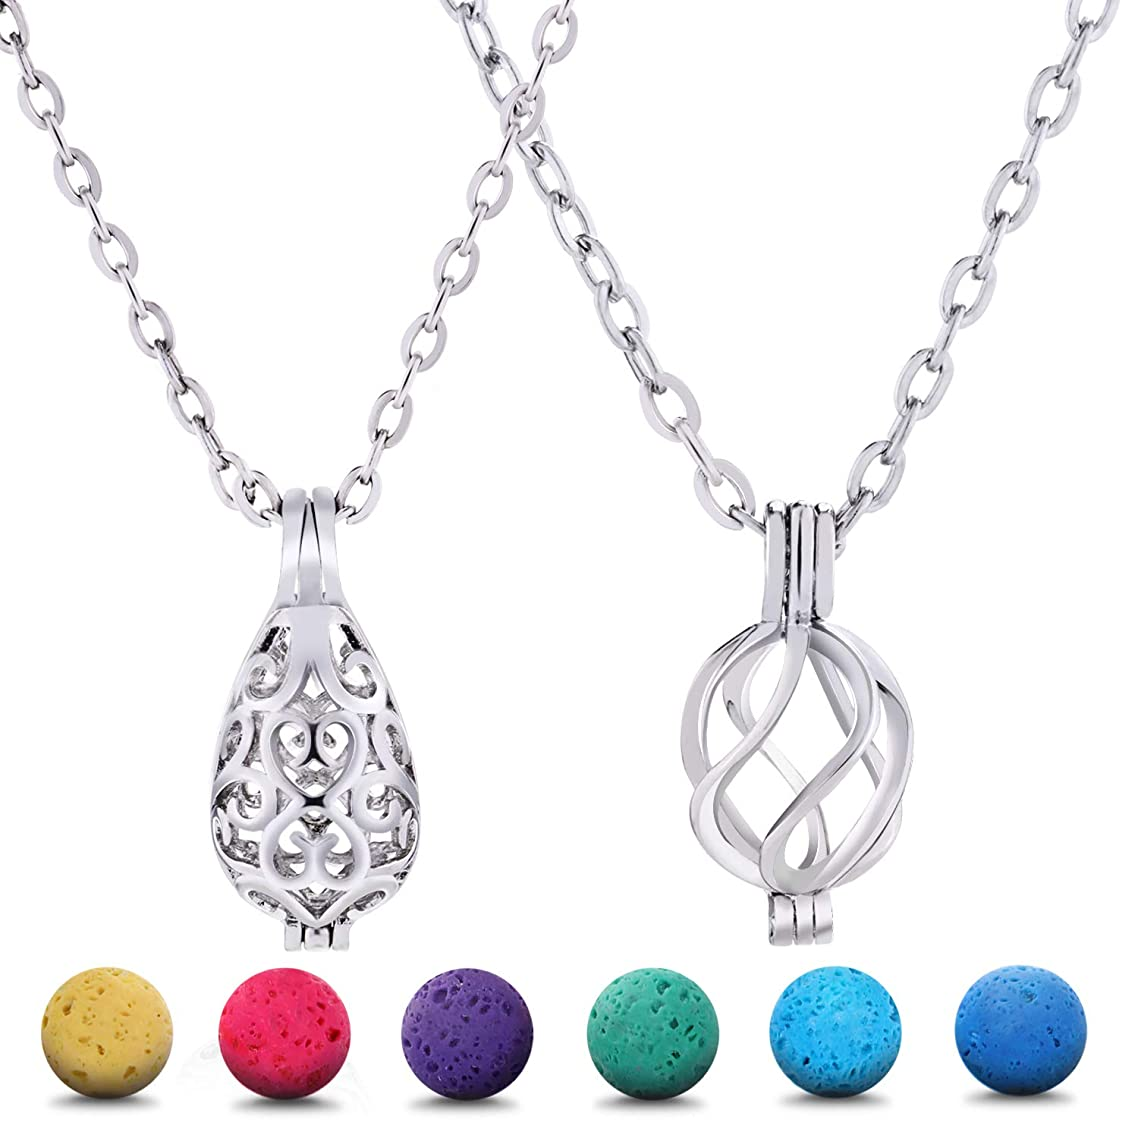 Blulu 2 Pieces Aromatherapy Essential Oil Diffuser Necklace Hollow Stainless Steel Necklace with 24 Pieces Lava Stone for Women and Girls